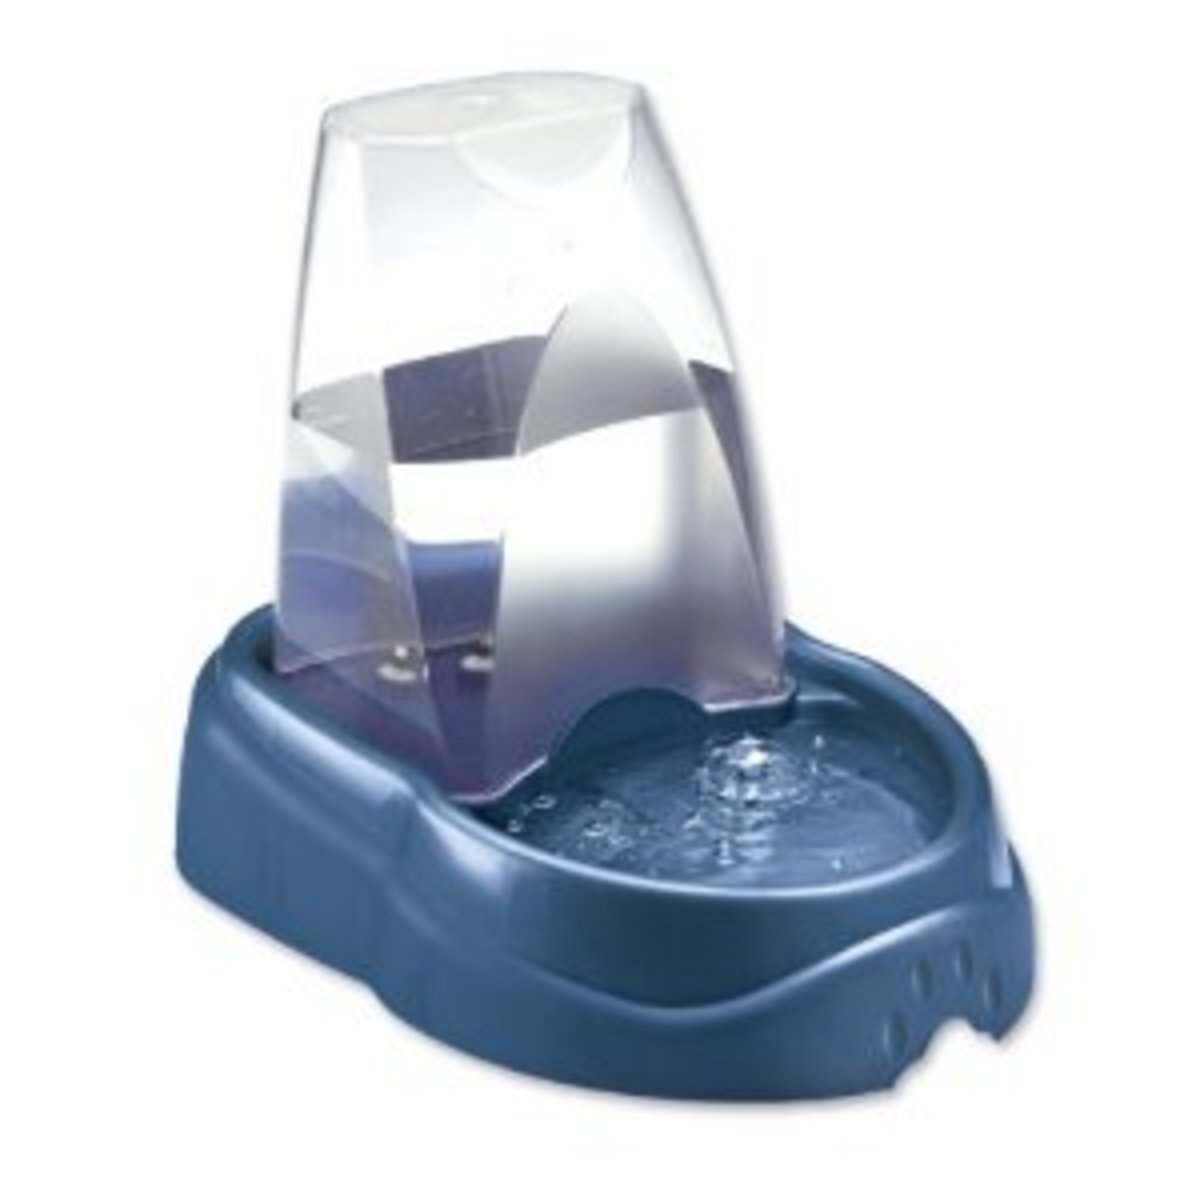 Petmate Ultra Bubbler Watering System, Medium, Peacock